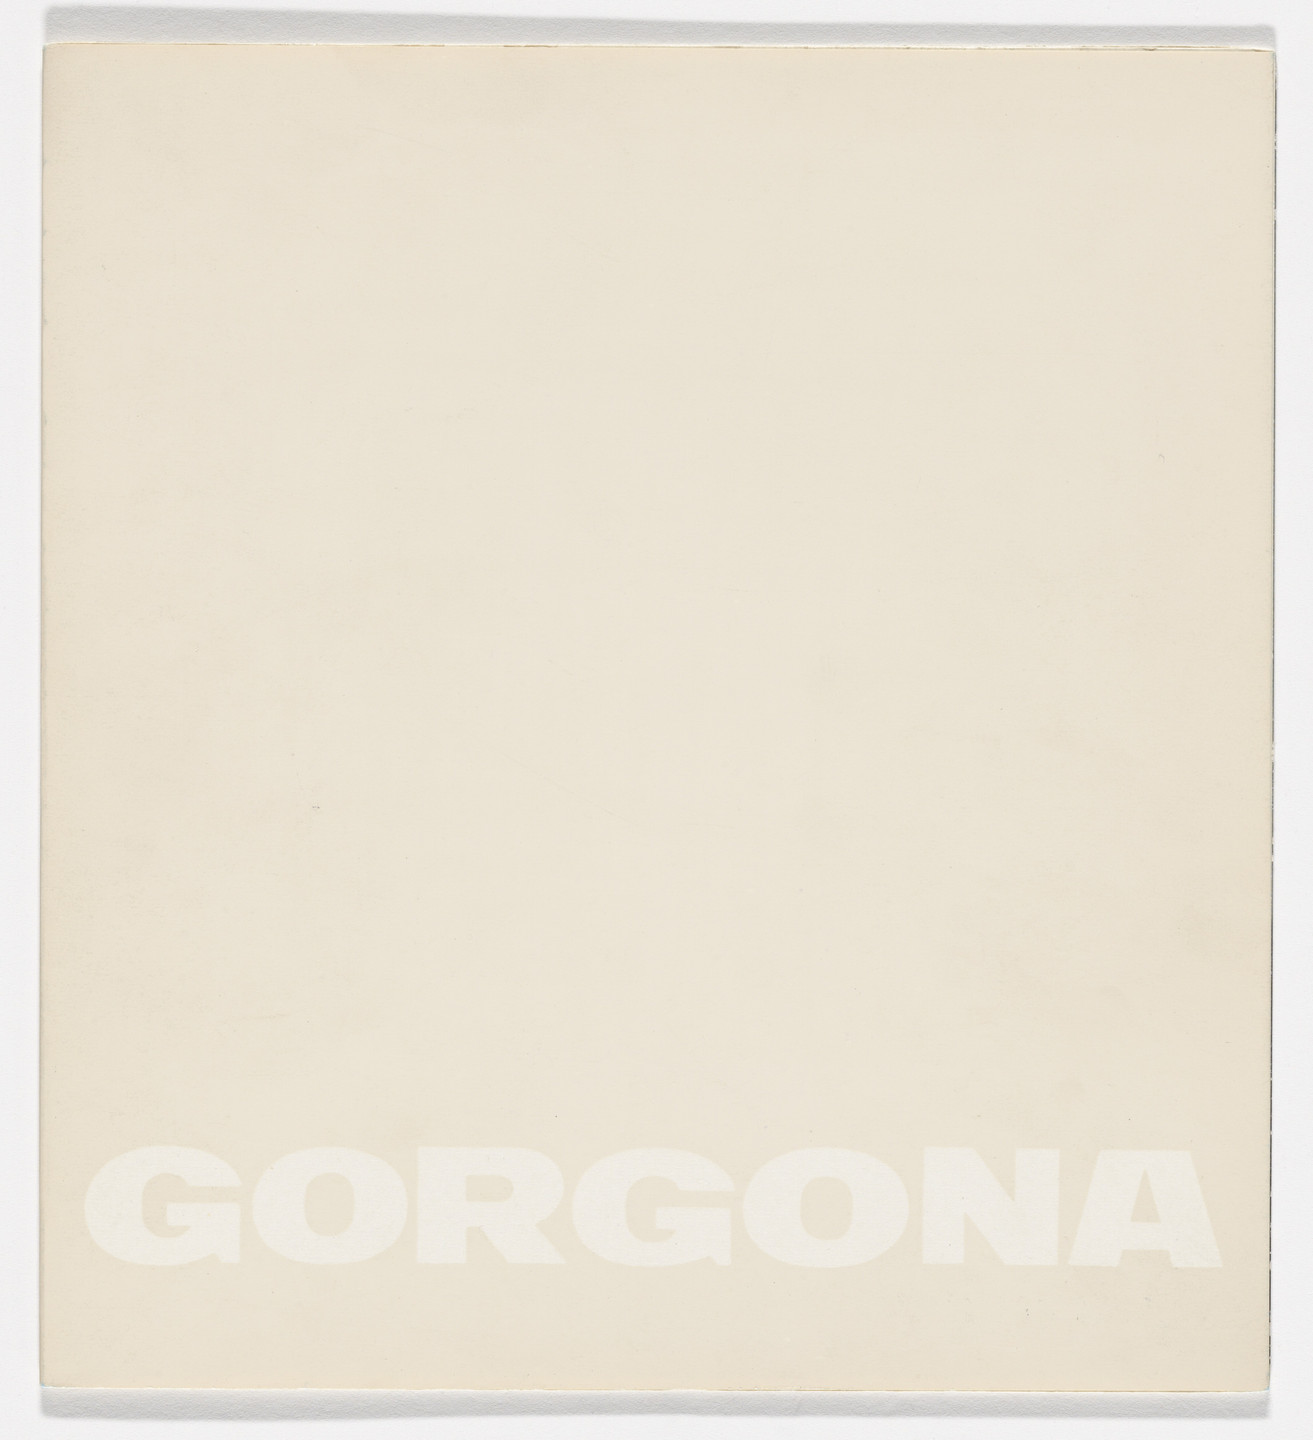 Ivan Kožarić, Gorgona artists group. Gorgona no. 5. 1961